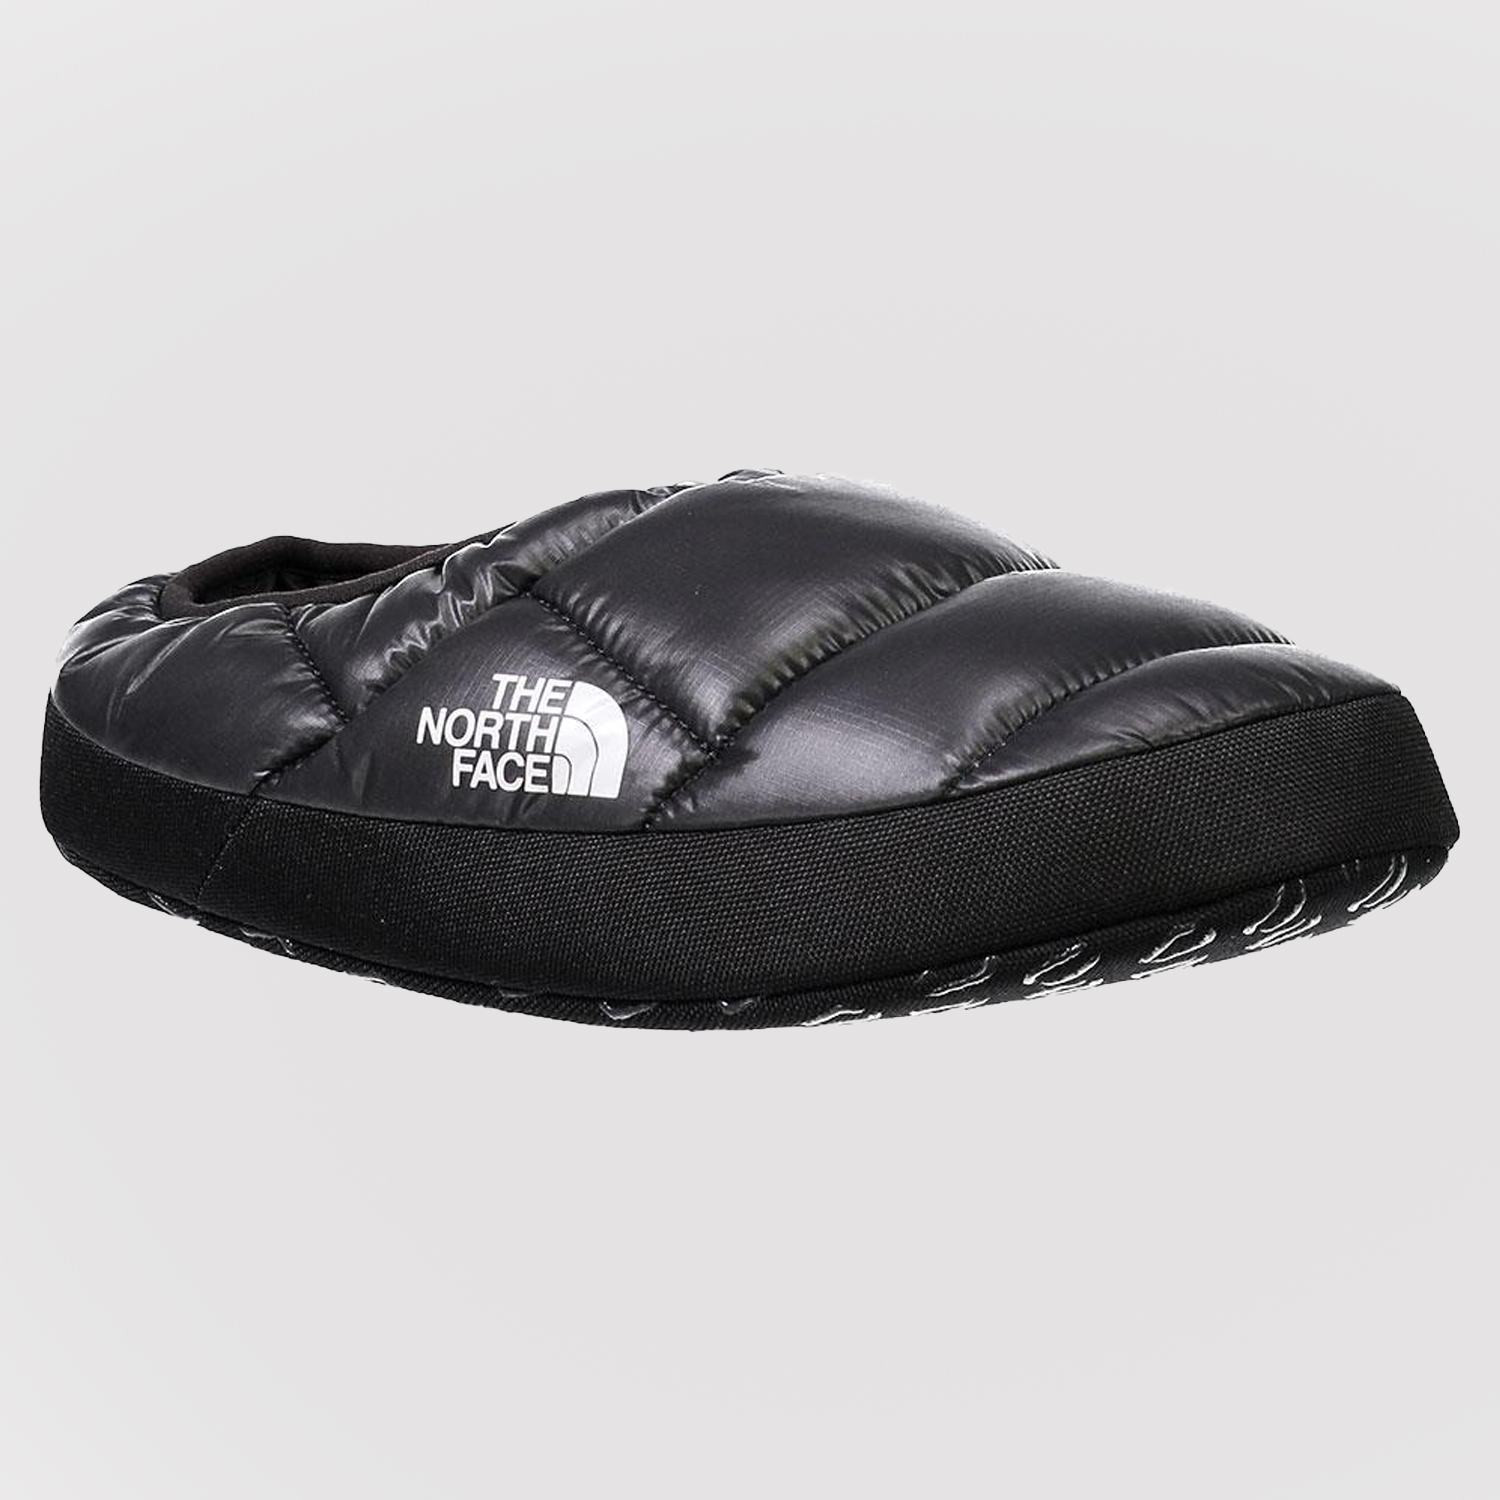 THE NORTH FACE M NSE TENT MULE III